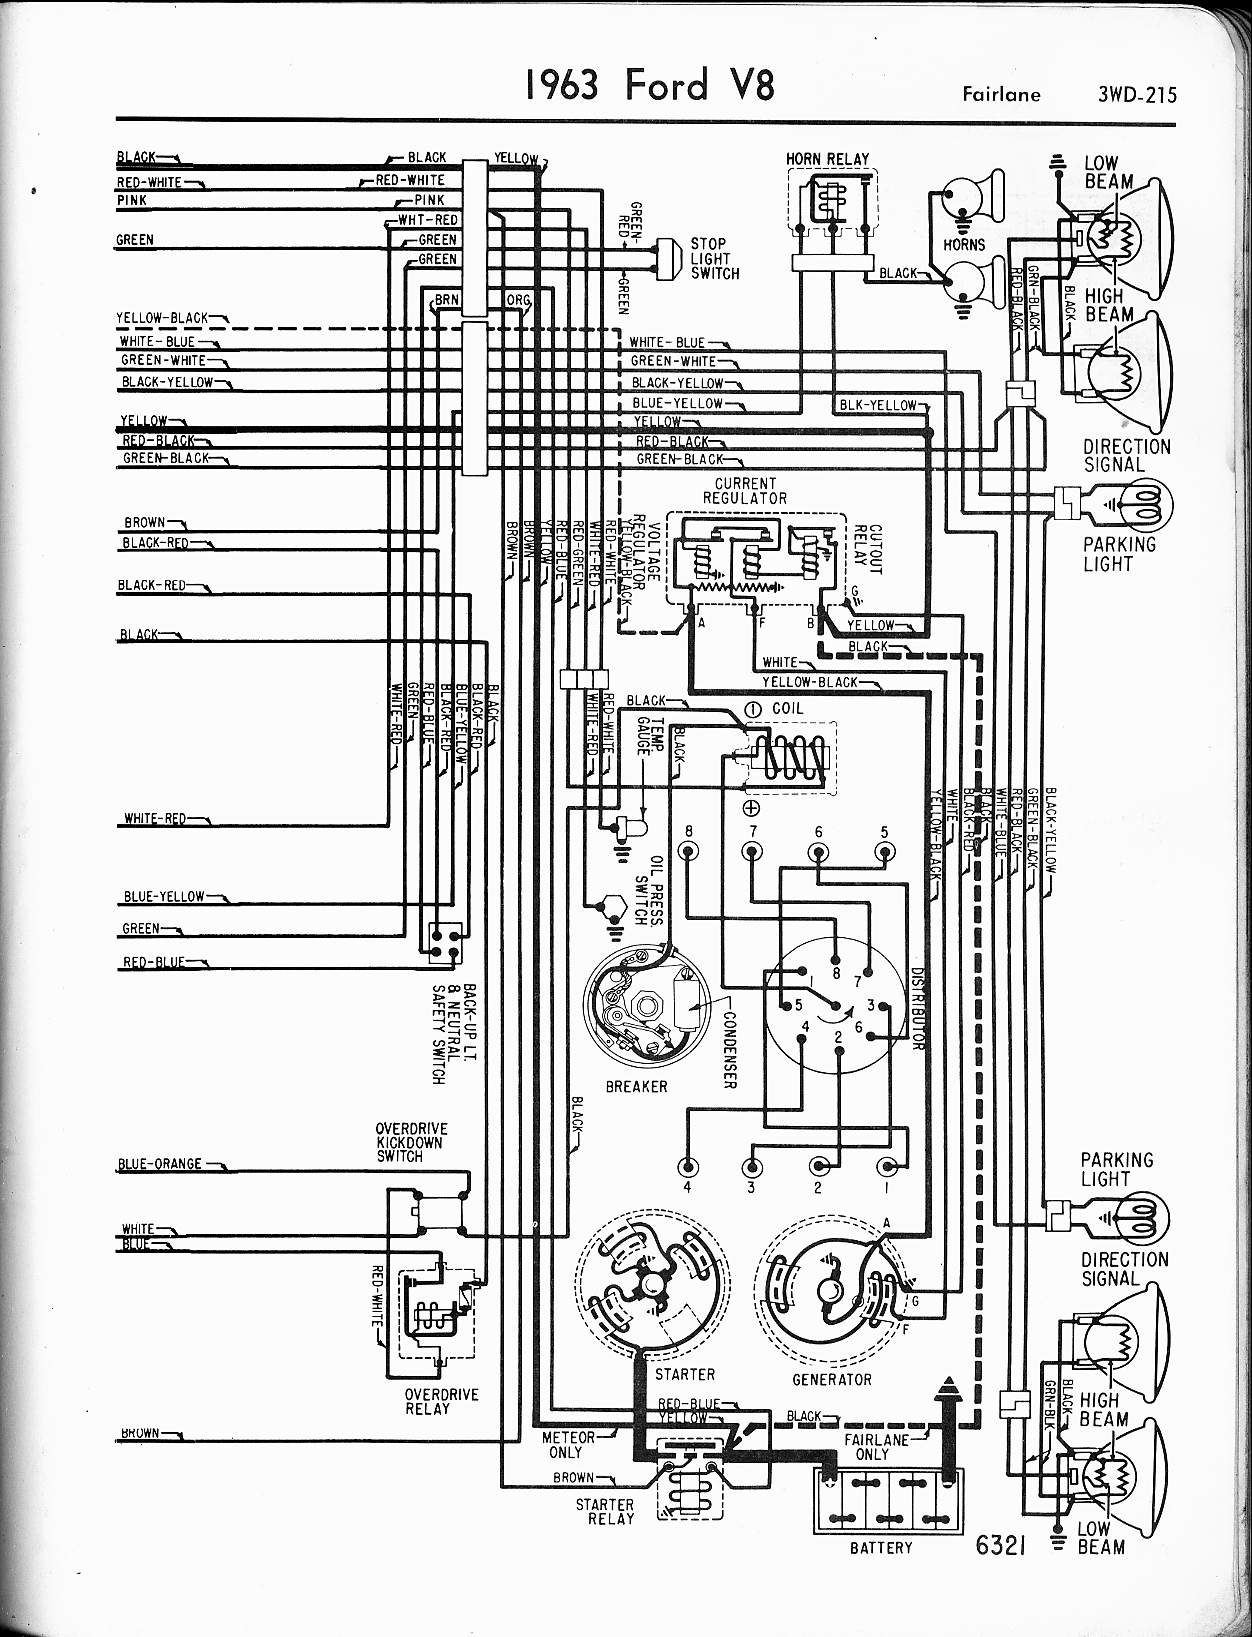 1962 ford falcon ignition switch wiring diagram  1962